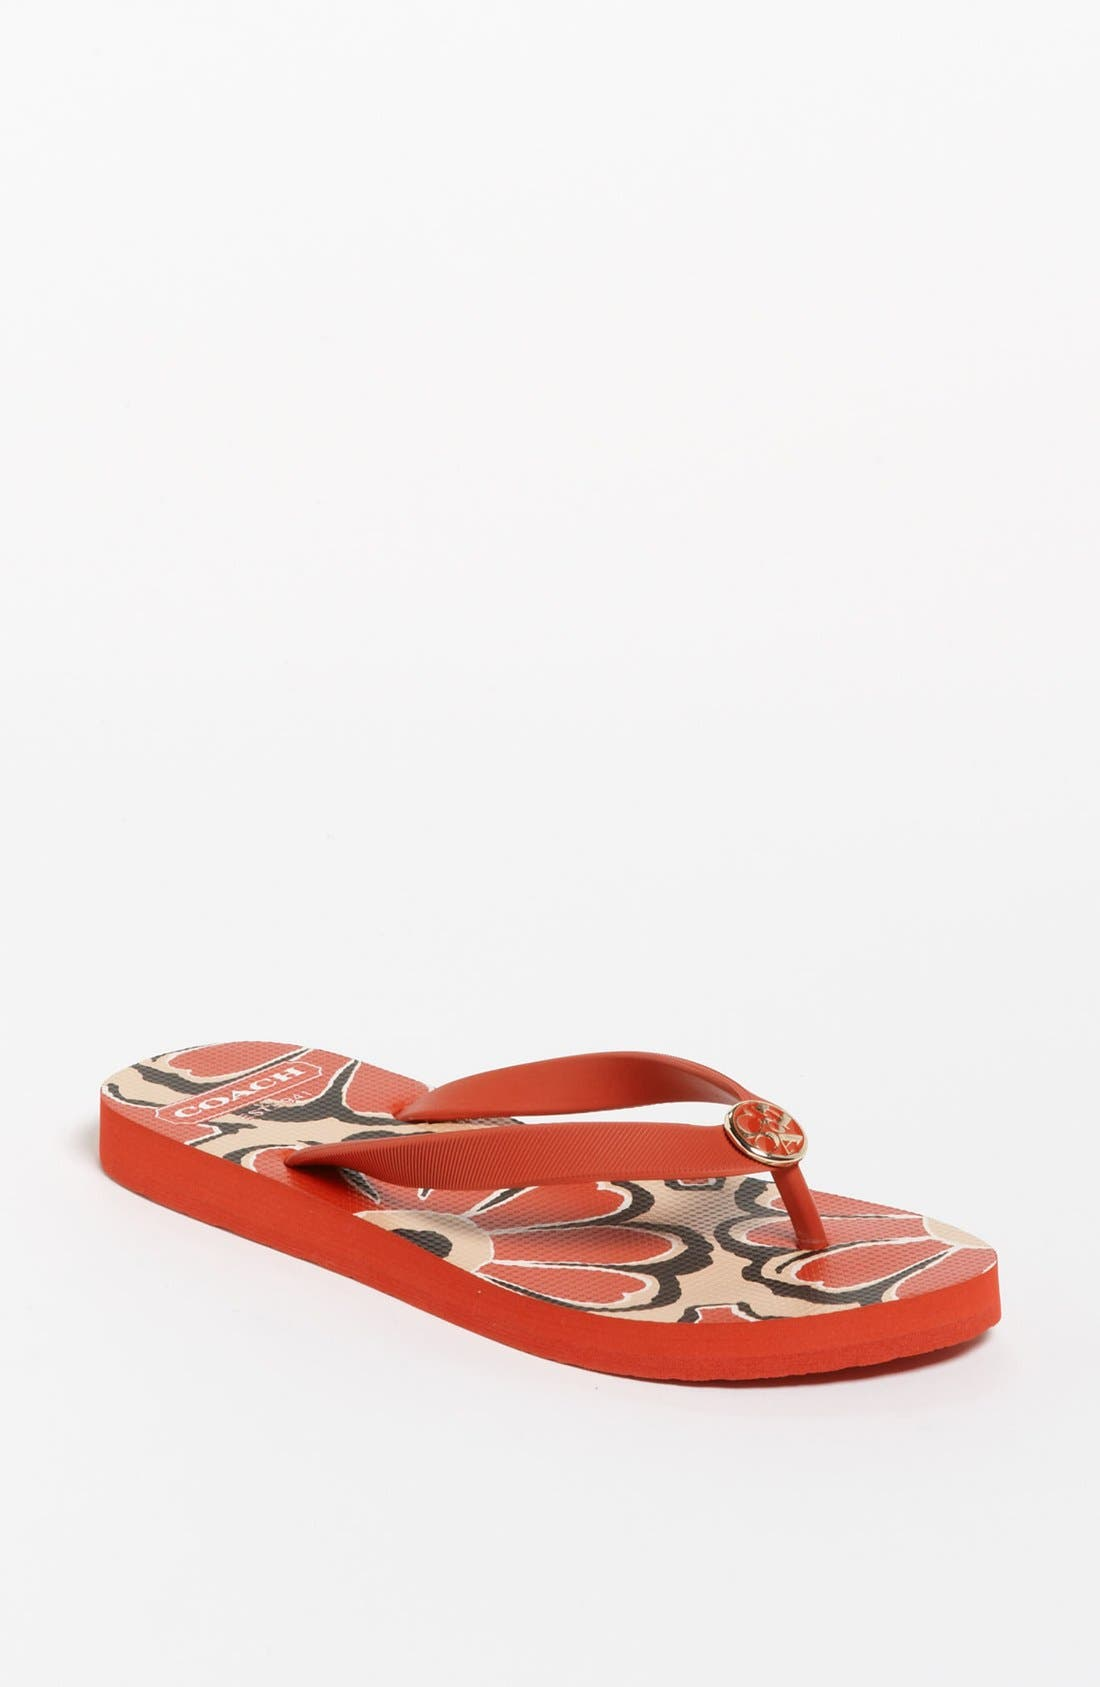 Alternate Image 1 Selected - COACH 'Alessa' Flip Flop